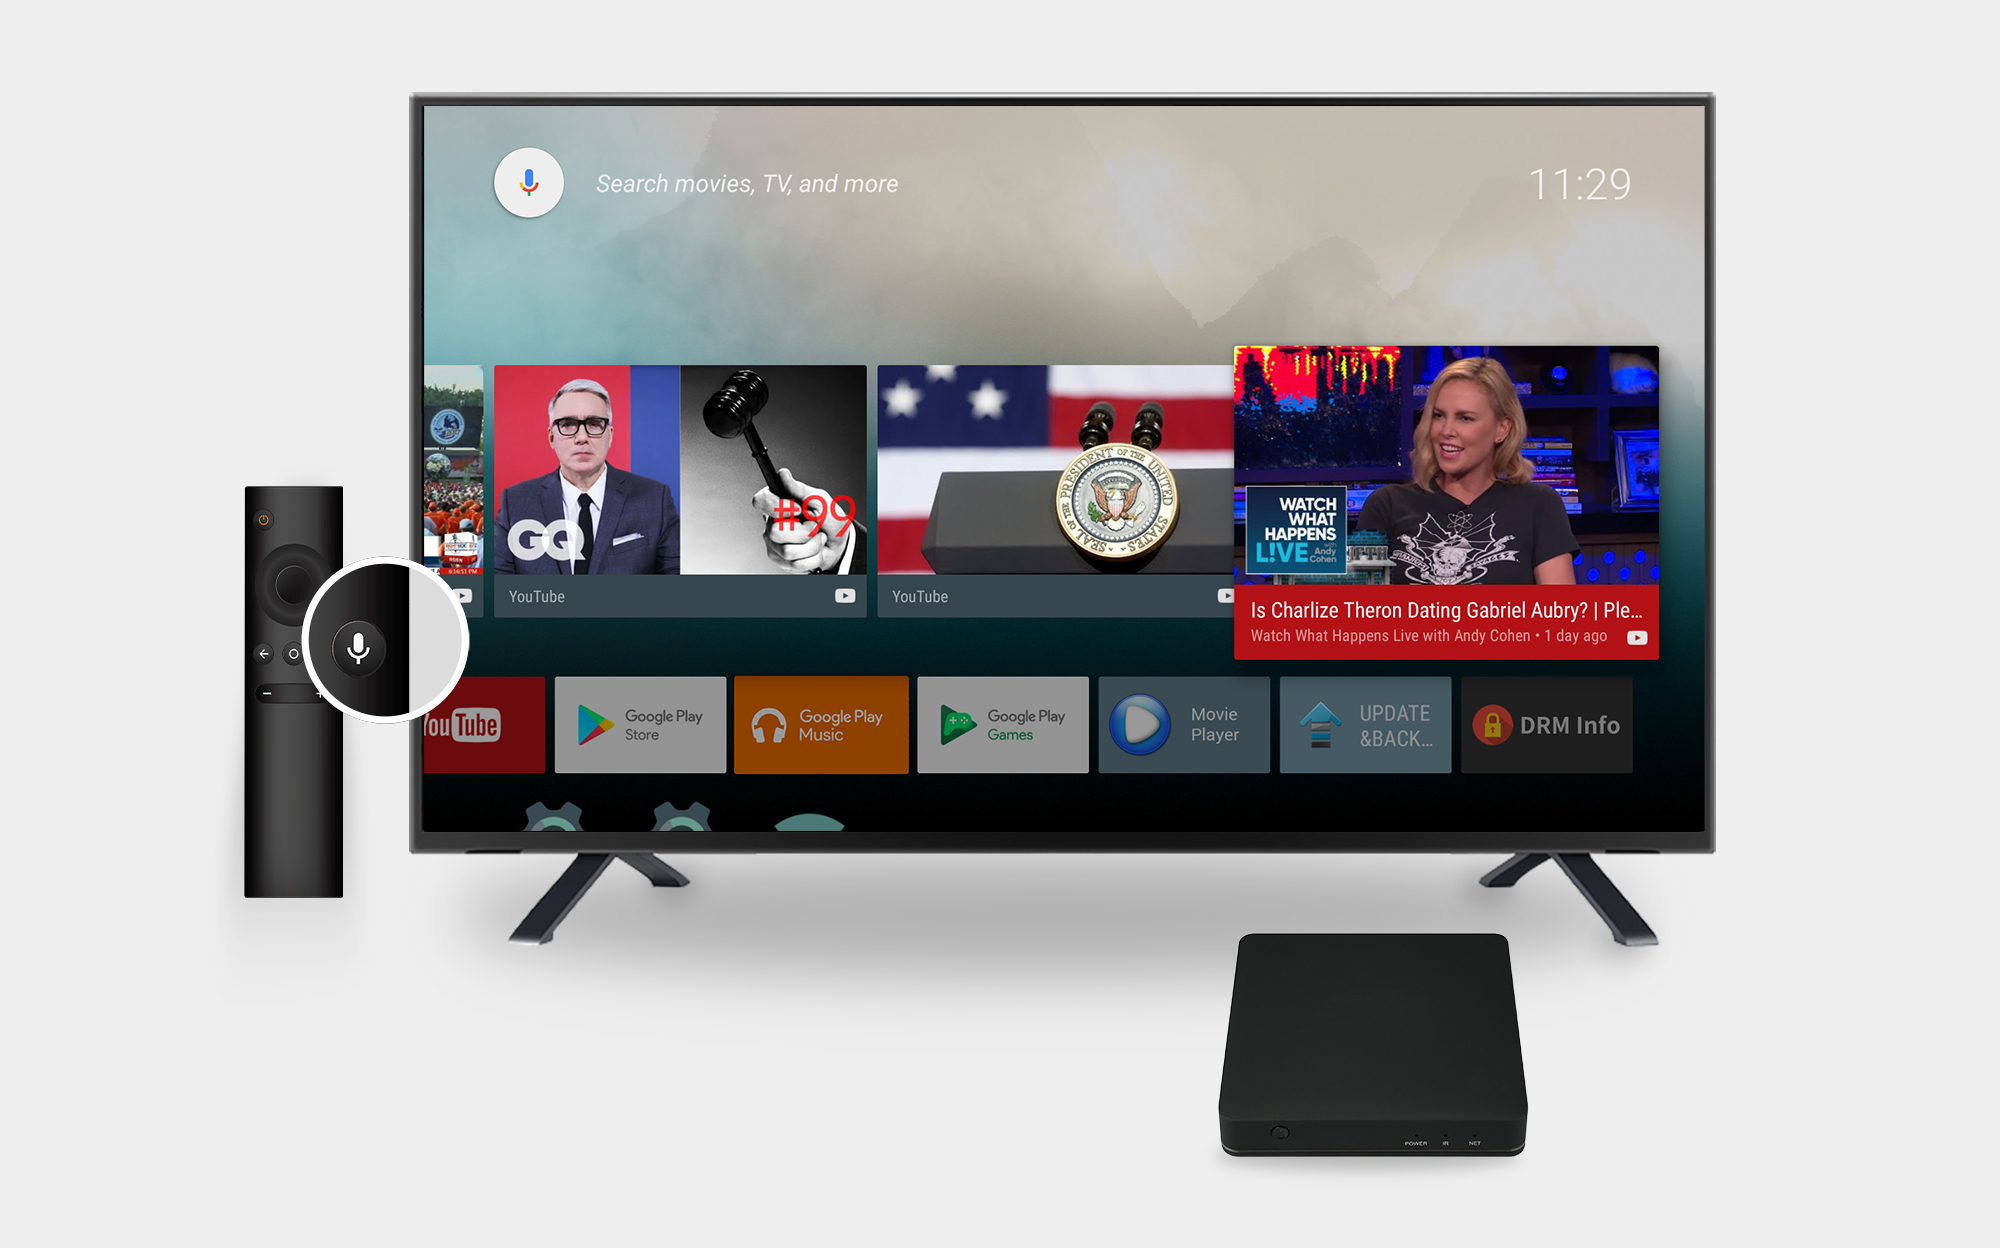 Android 7.1 Powered by Android TV